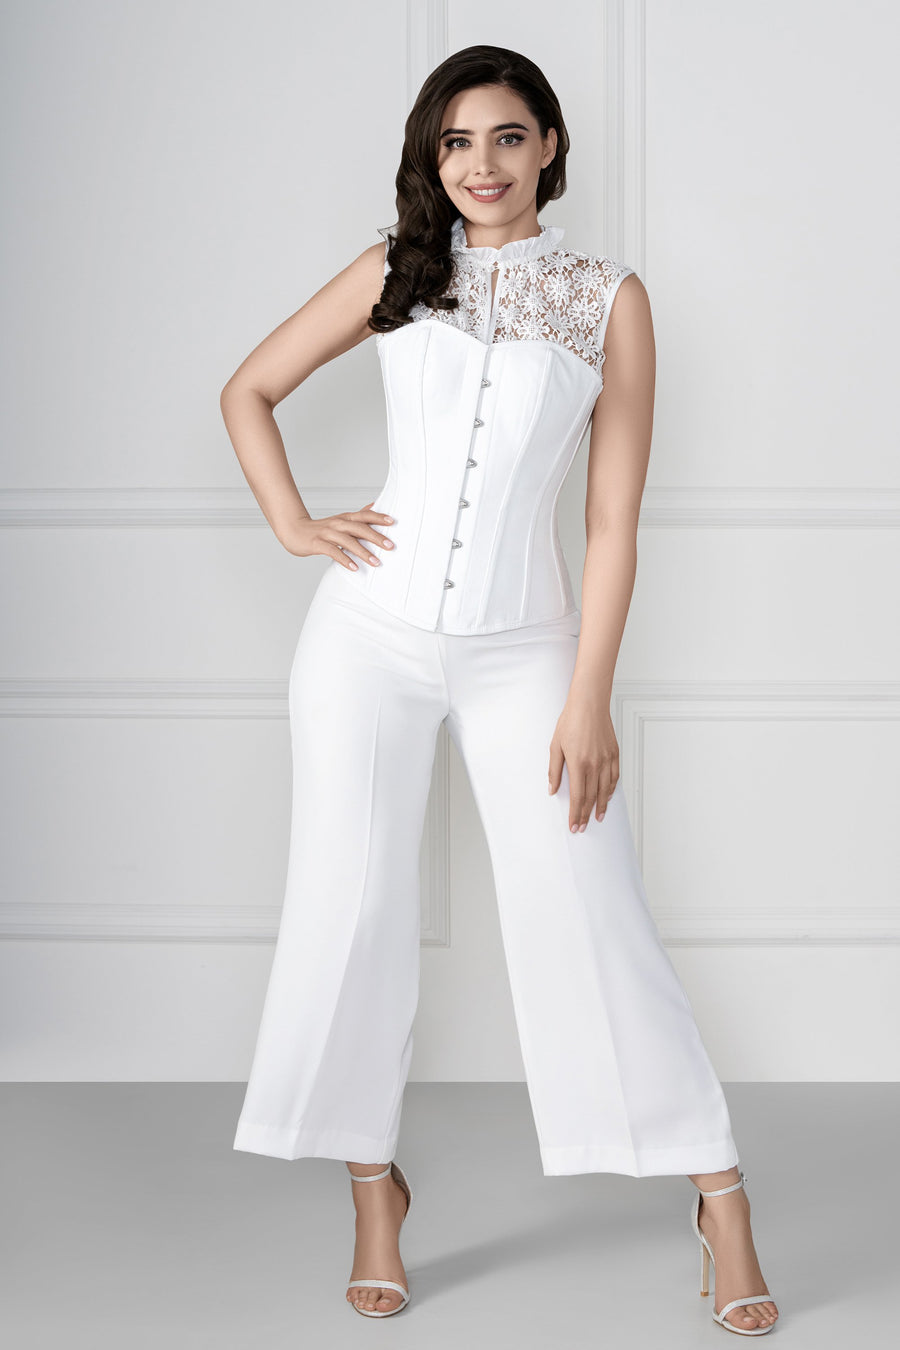 Floral Embroidered White Corset Top – Corset Story US